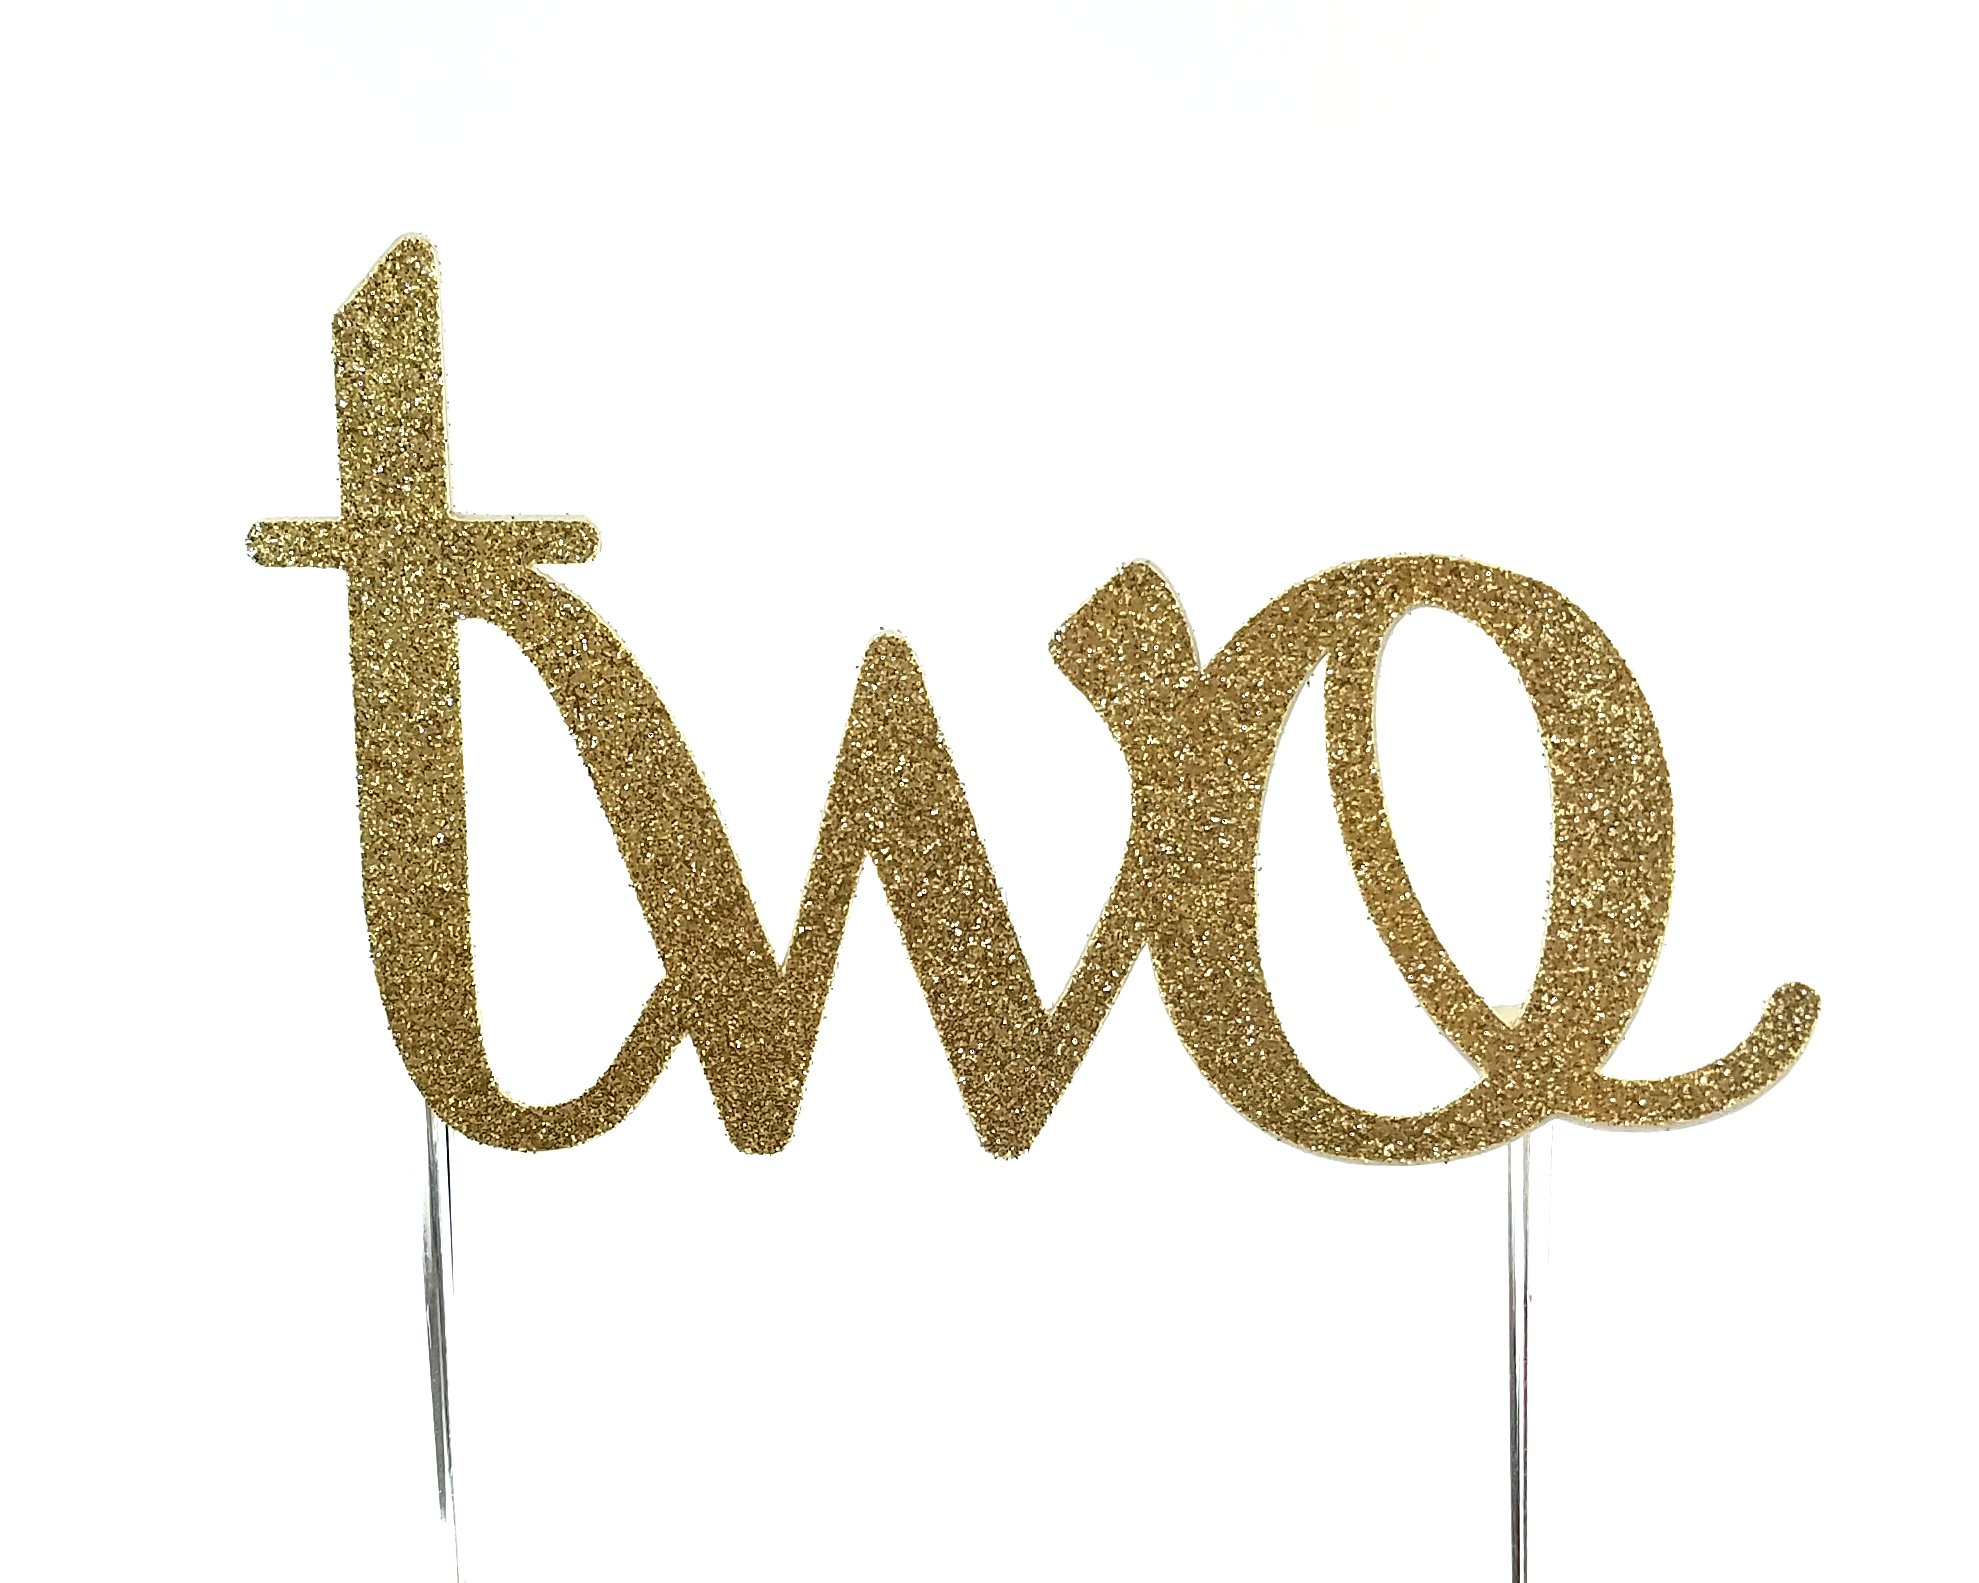 Handmade 2nd Second Birthday Cake Topper Decoration - two - Made in USA with Double Sided Gold Glitter Stock